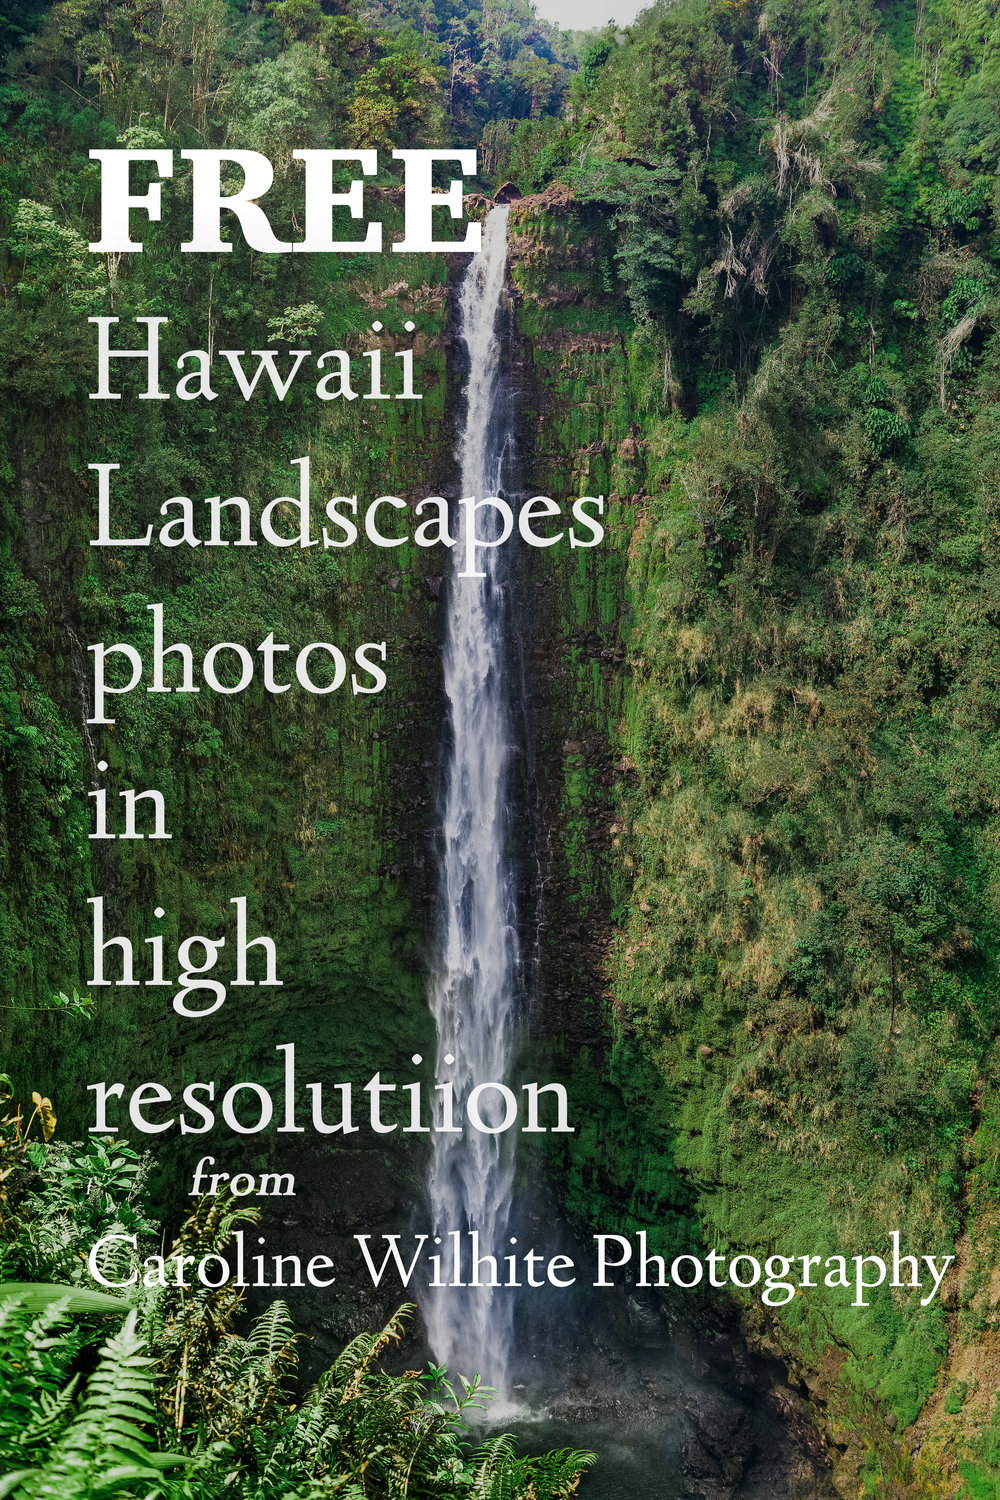 Free Hawaii Photos from Caroline Wilhite Photography